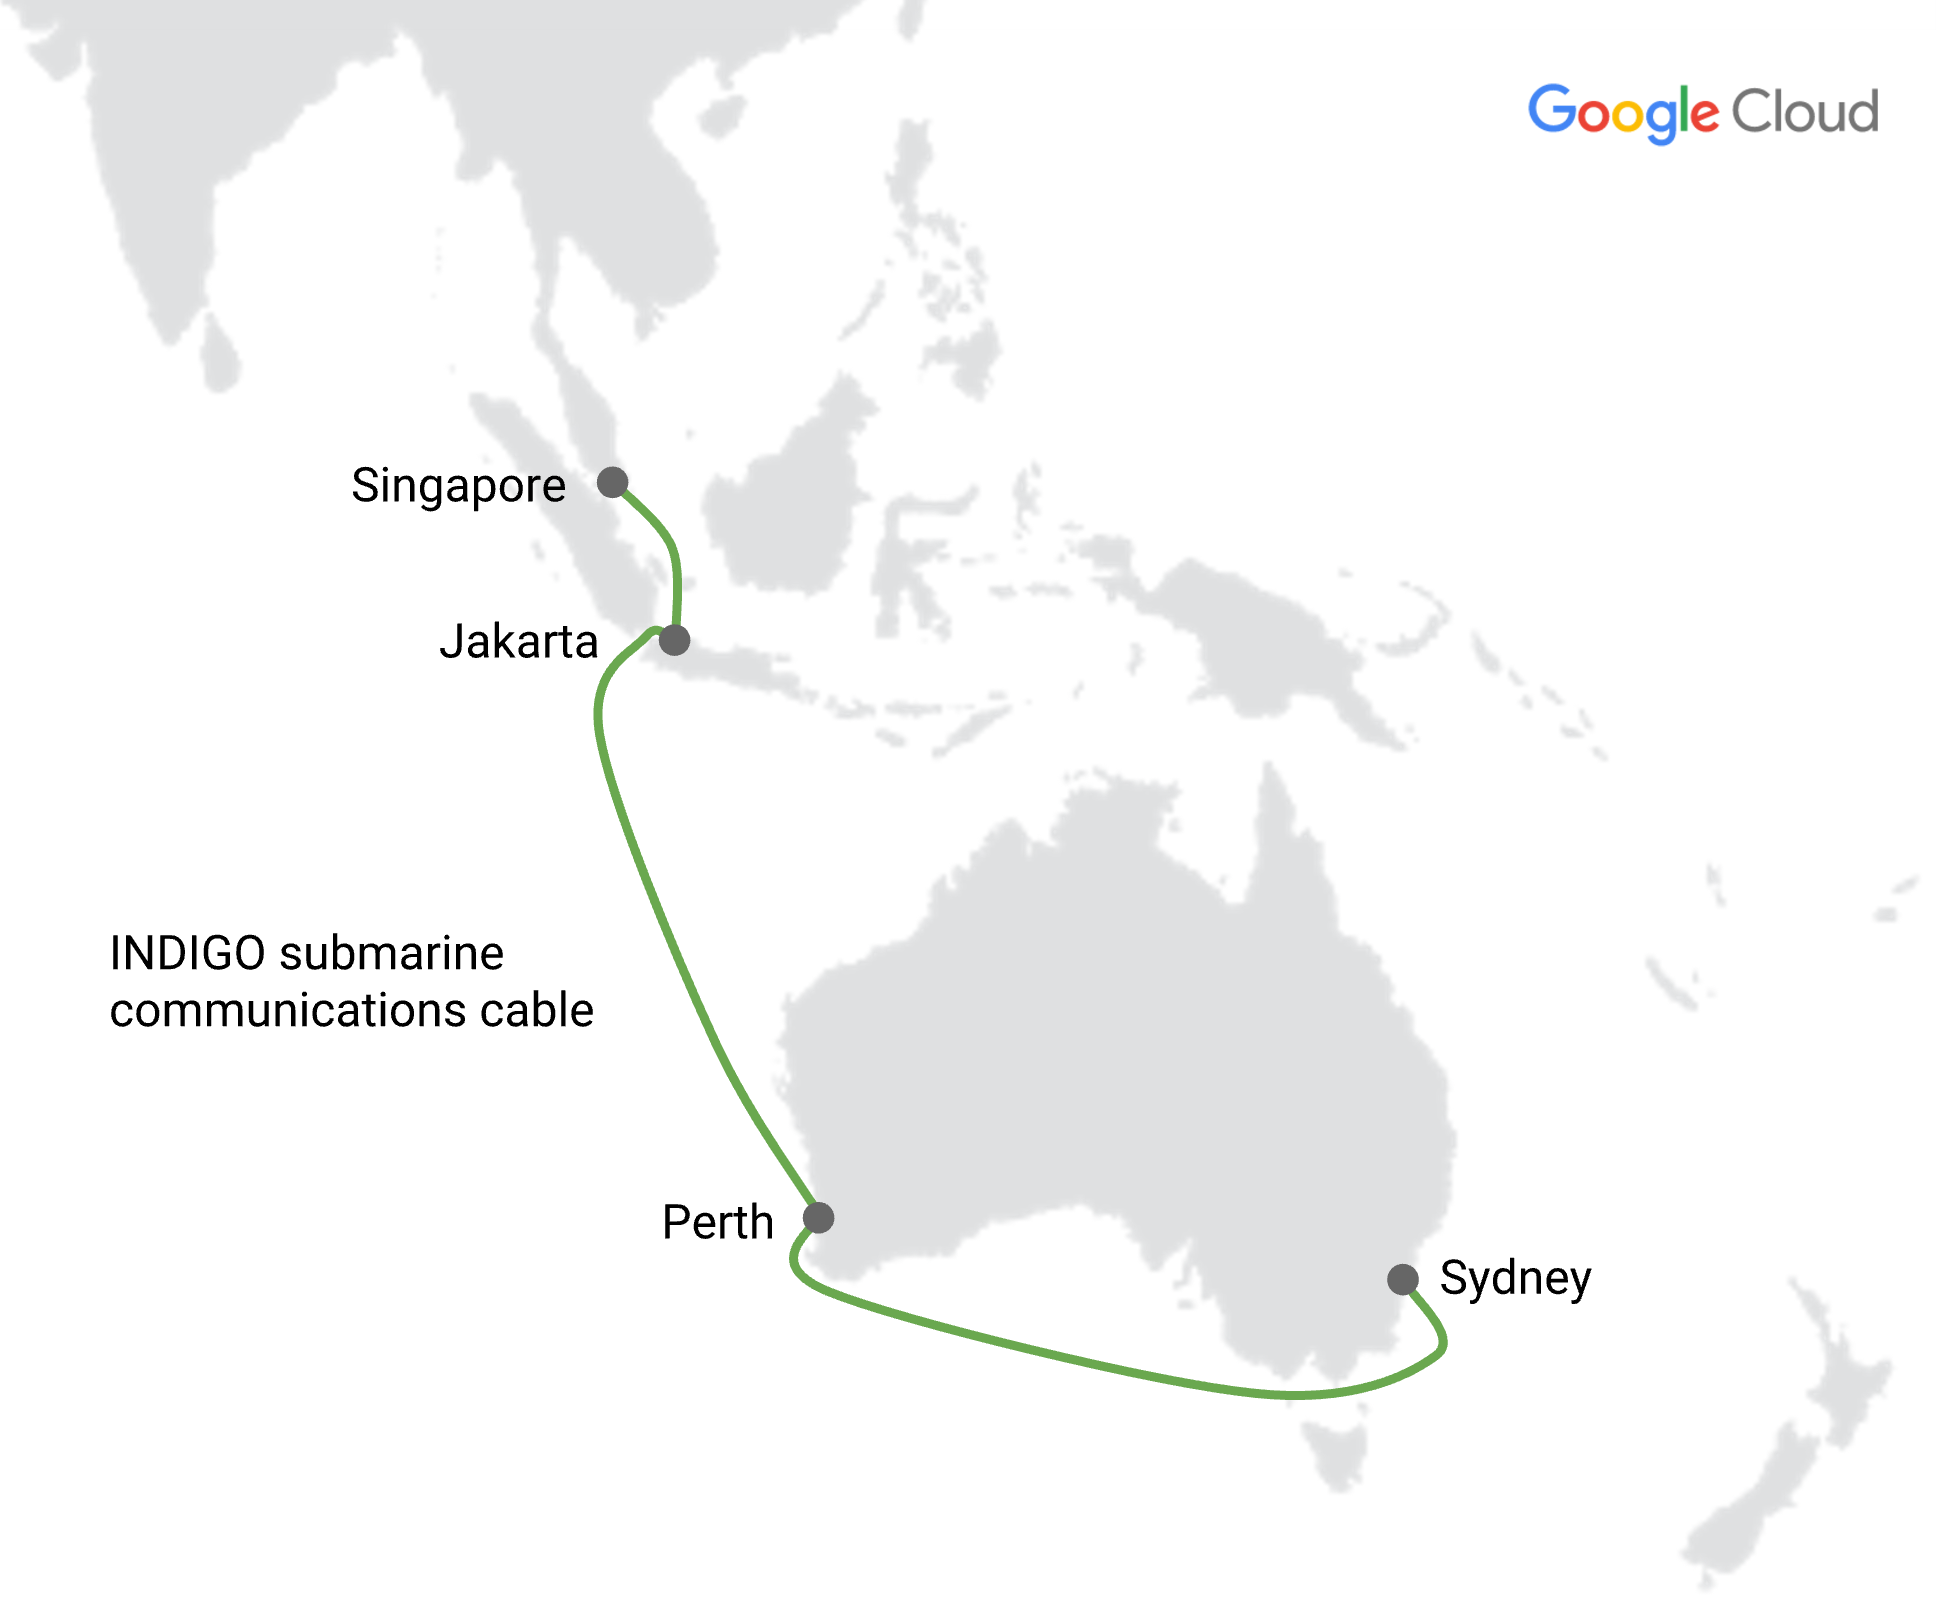 Google invests in new subsea cable that connects singapore to the cable will feature two fiber pairs with a total capacity of about 18 terabits per second with the option to expand in the future publicscrutiny Gallery